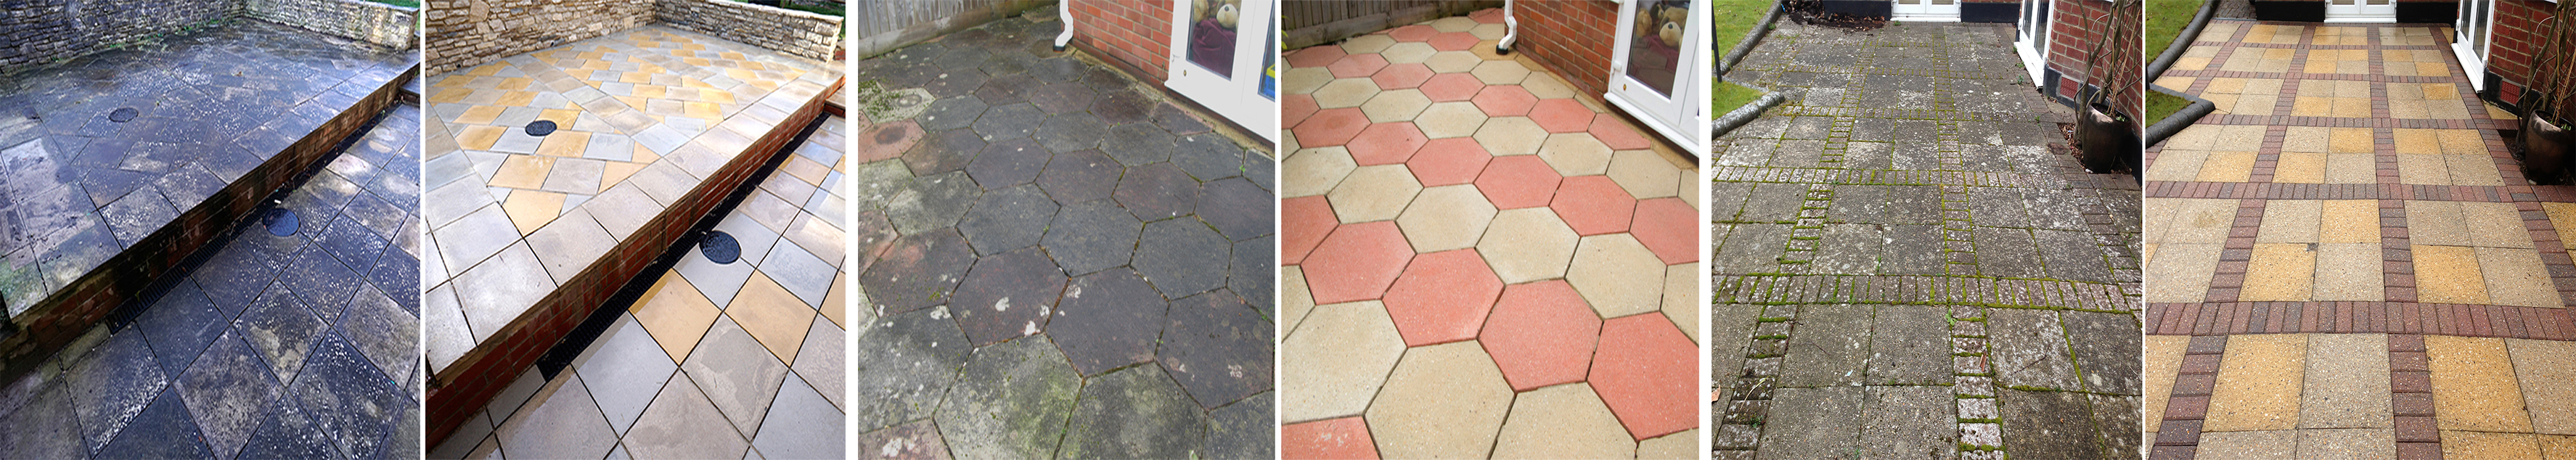 Patio Cleaning Services in Broadstone, Dorset